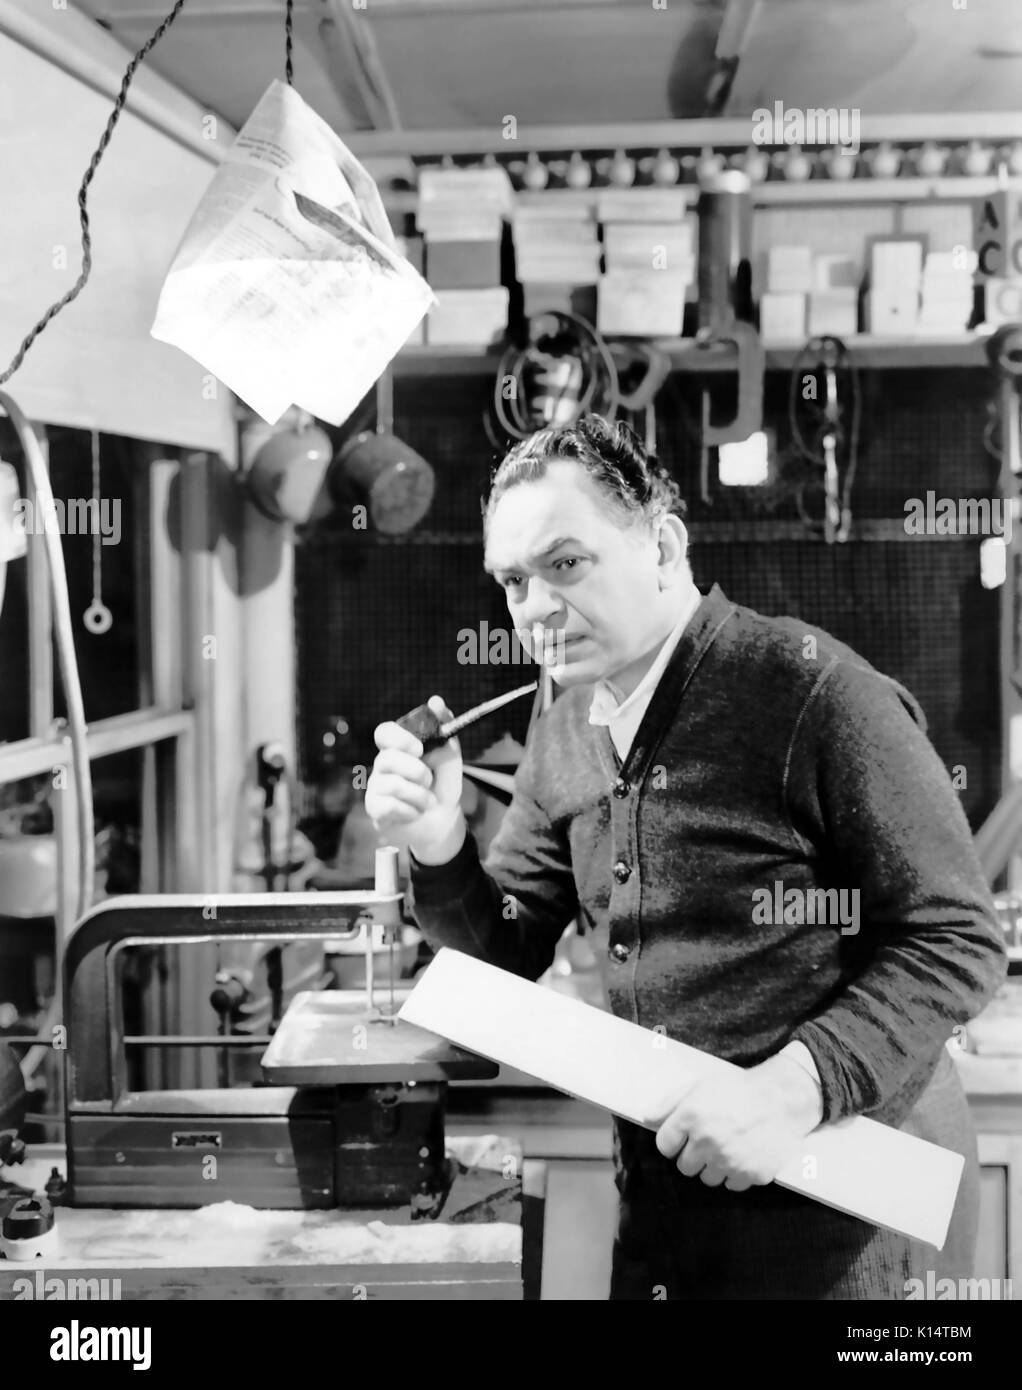 NIGHT HAS A THOUSAND EYES 1948 Paramount Pictures film noir with Edward G. Robinson - Stock Image